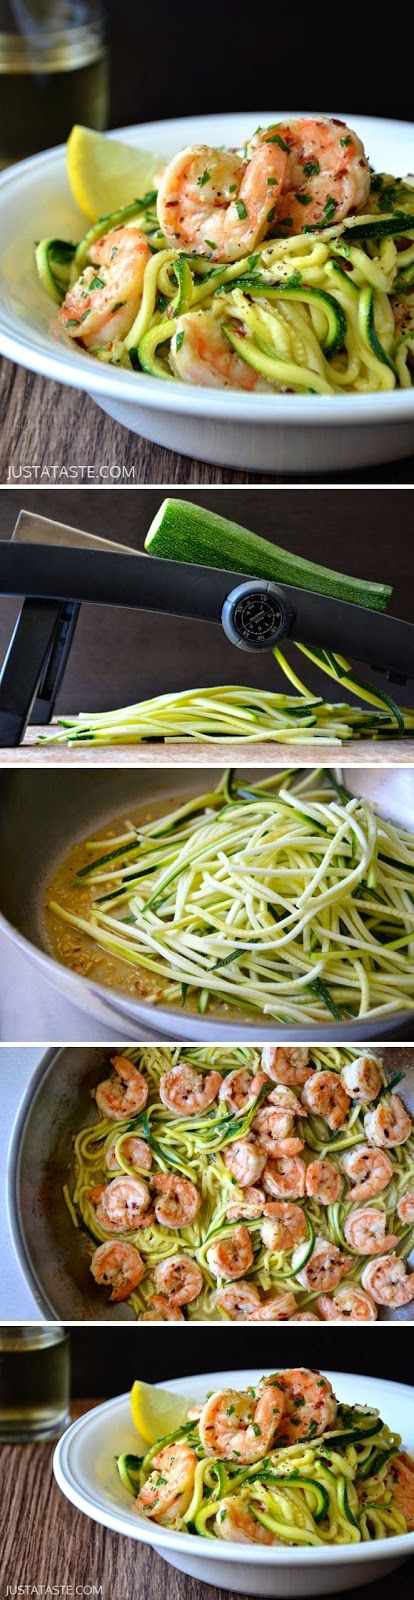 Skinny Shrimp Scampi with Zucchini Noodles #recipe from @justataste